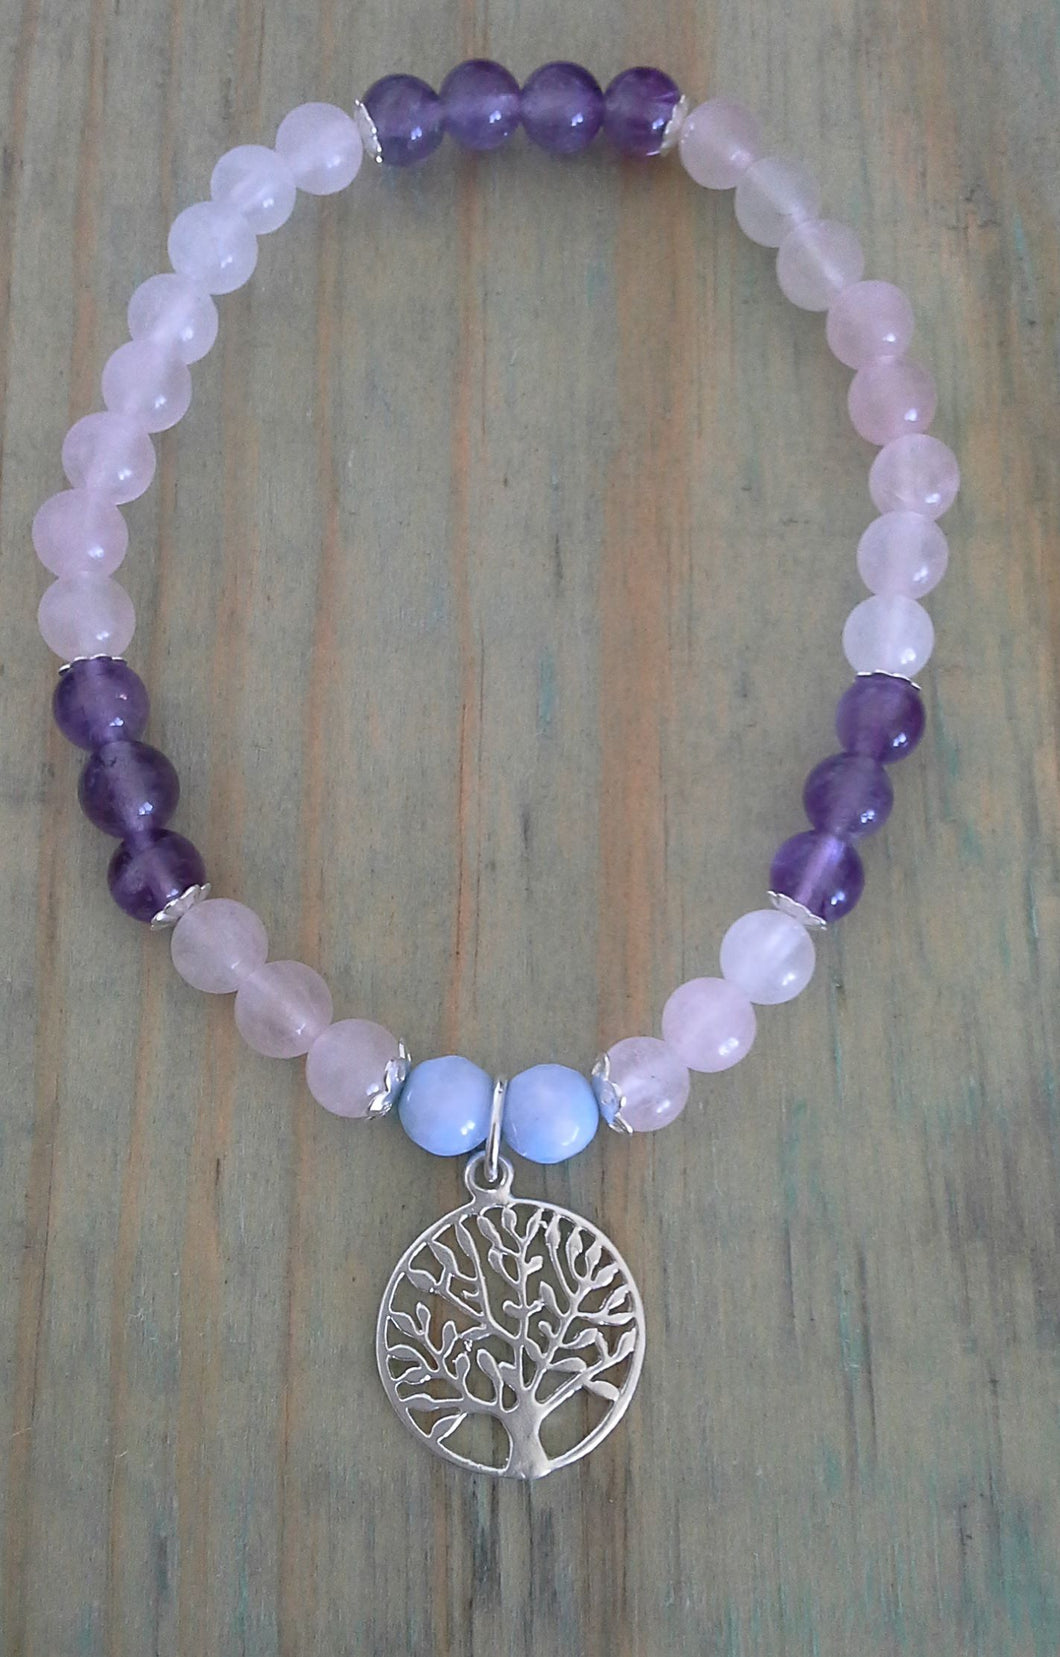 925 Sterling Silver Bracelet with Tree of Life Charm - Rose Quartz, Amethyst & Blue Lace Agate